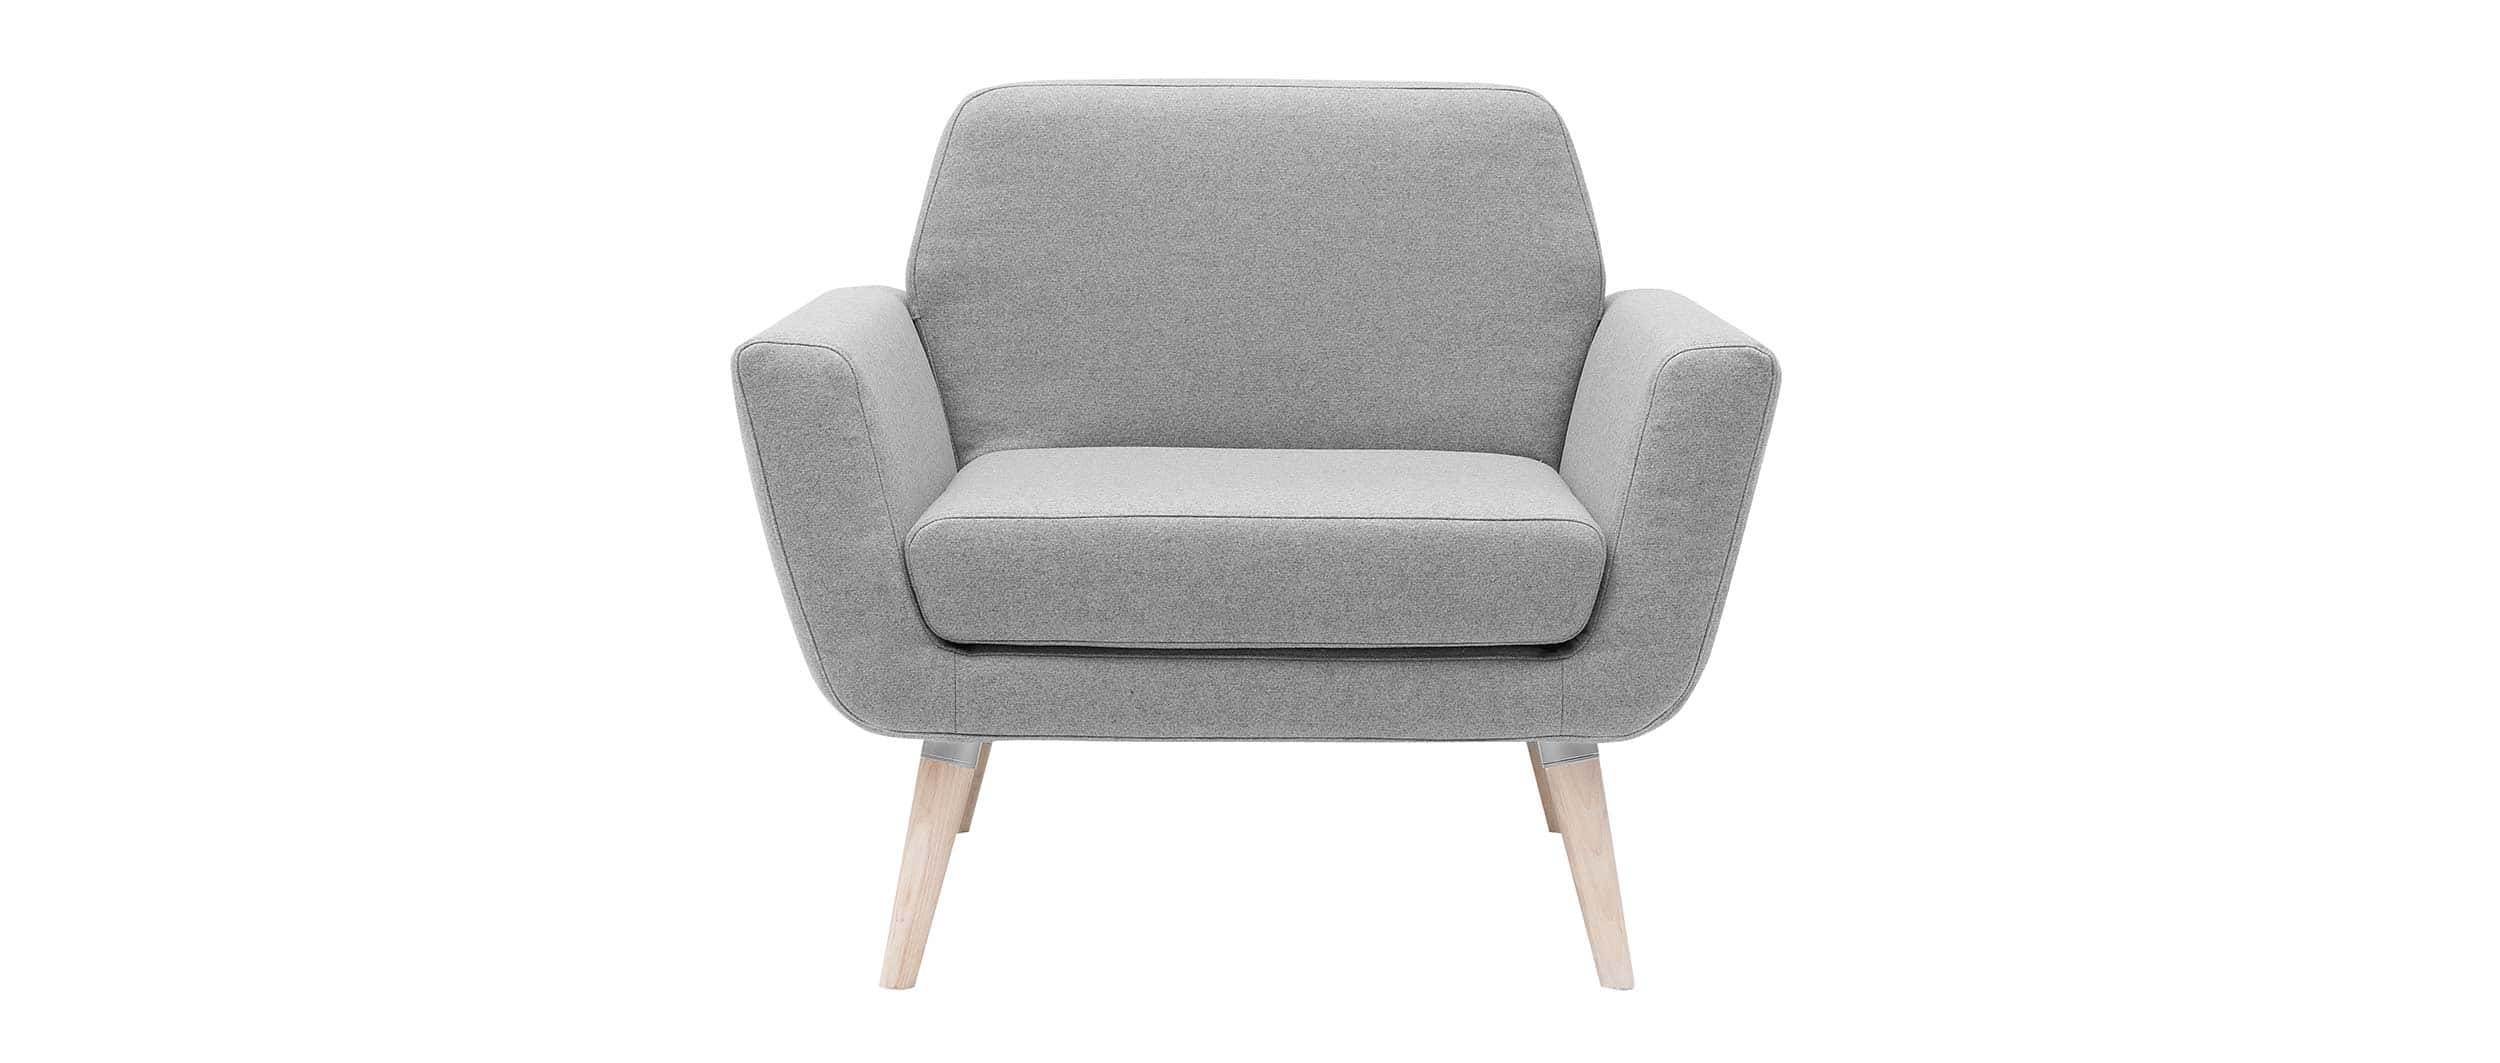 Sessel Lavendel Softline Lounge Sessel Scope Mit Eschenholzfüßen Mysofabed De